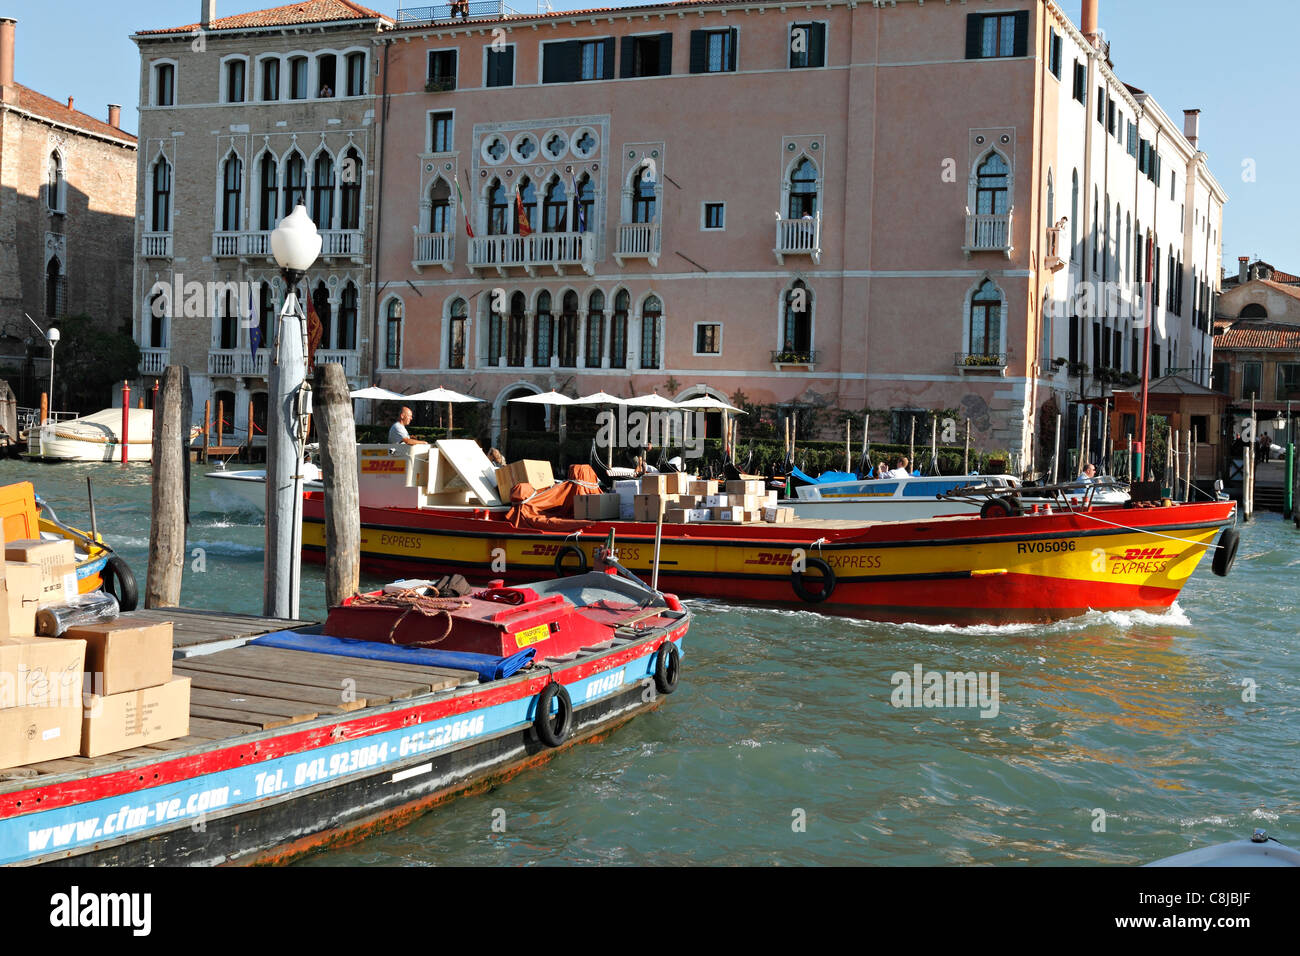 dhl express postal boat on the canal grande venice italy stock photo royalty free image. Black Bedroom Furniture Sets. Home Design Ideas